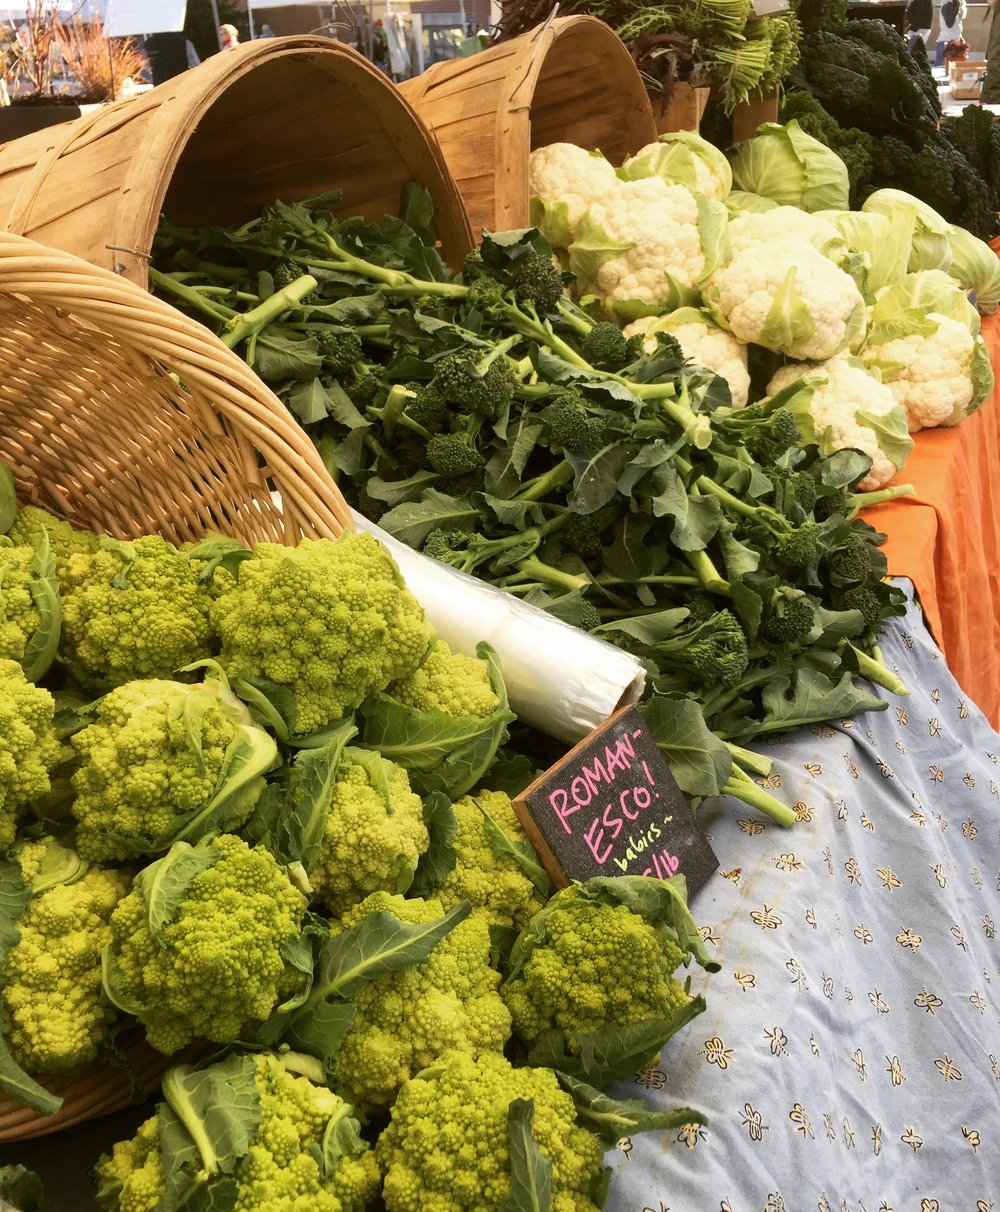 Fall Bounty at the Swarthmore Farmers' Market